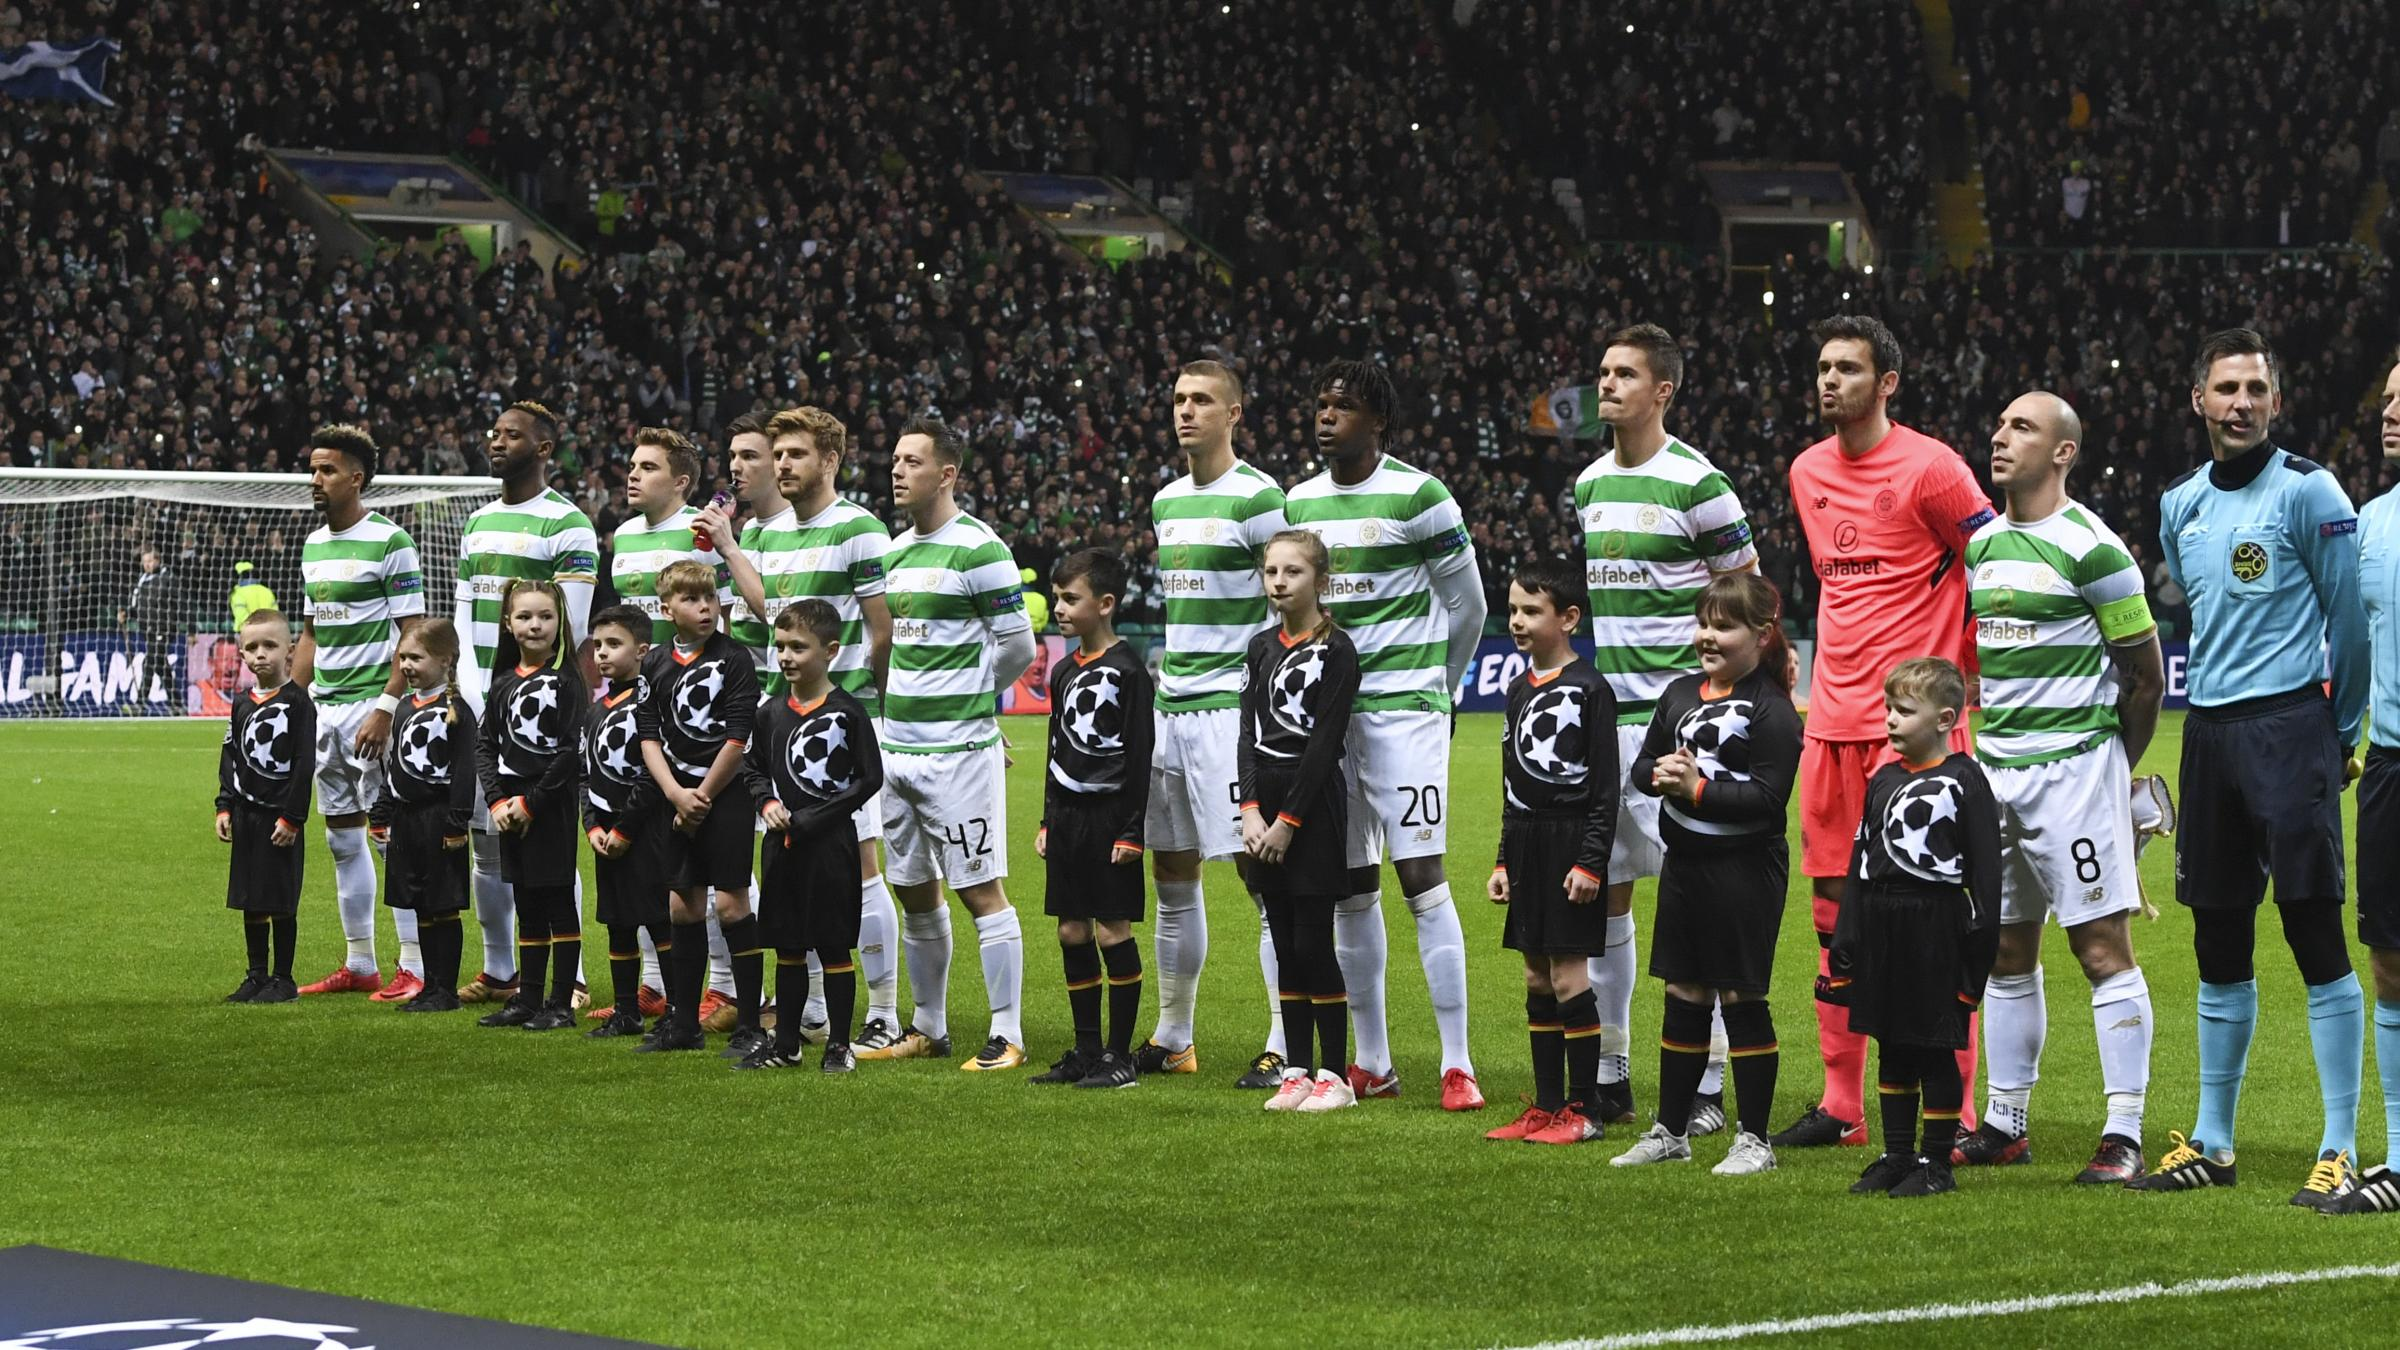 Celtic ahead of kick-off